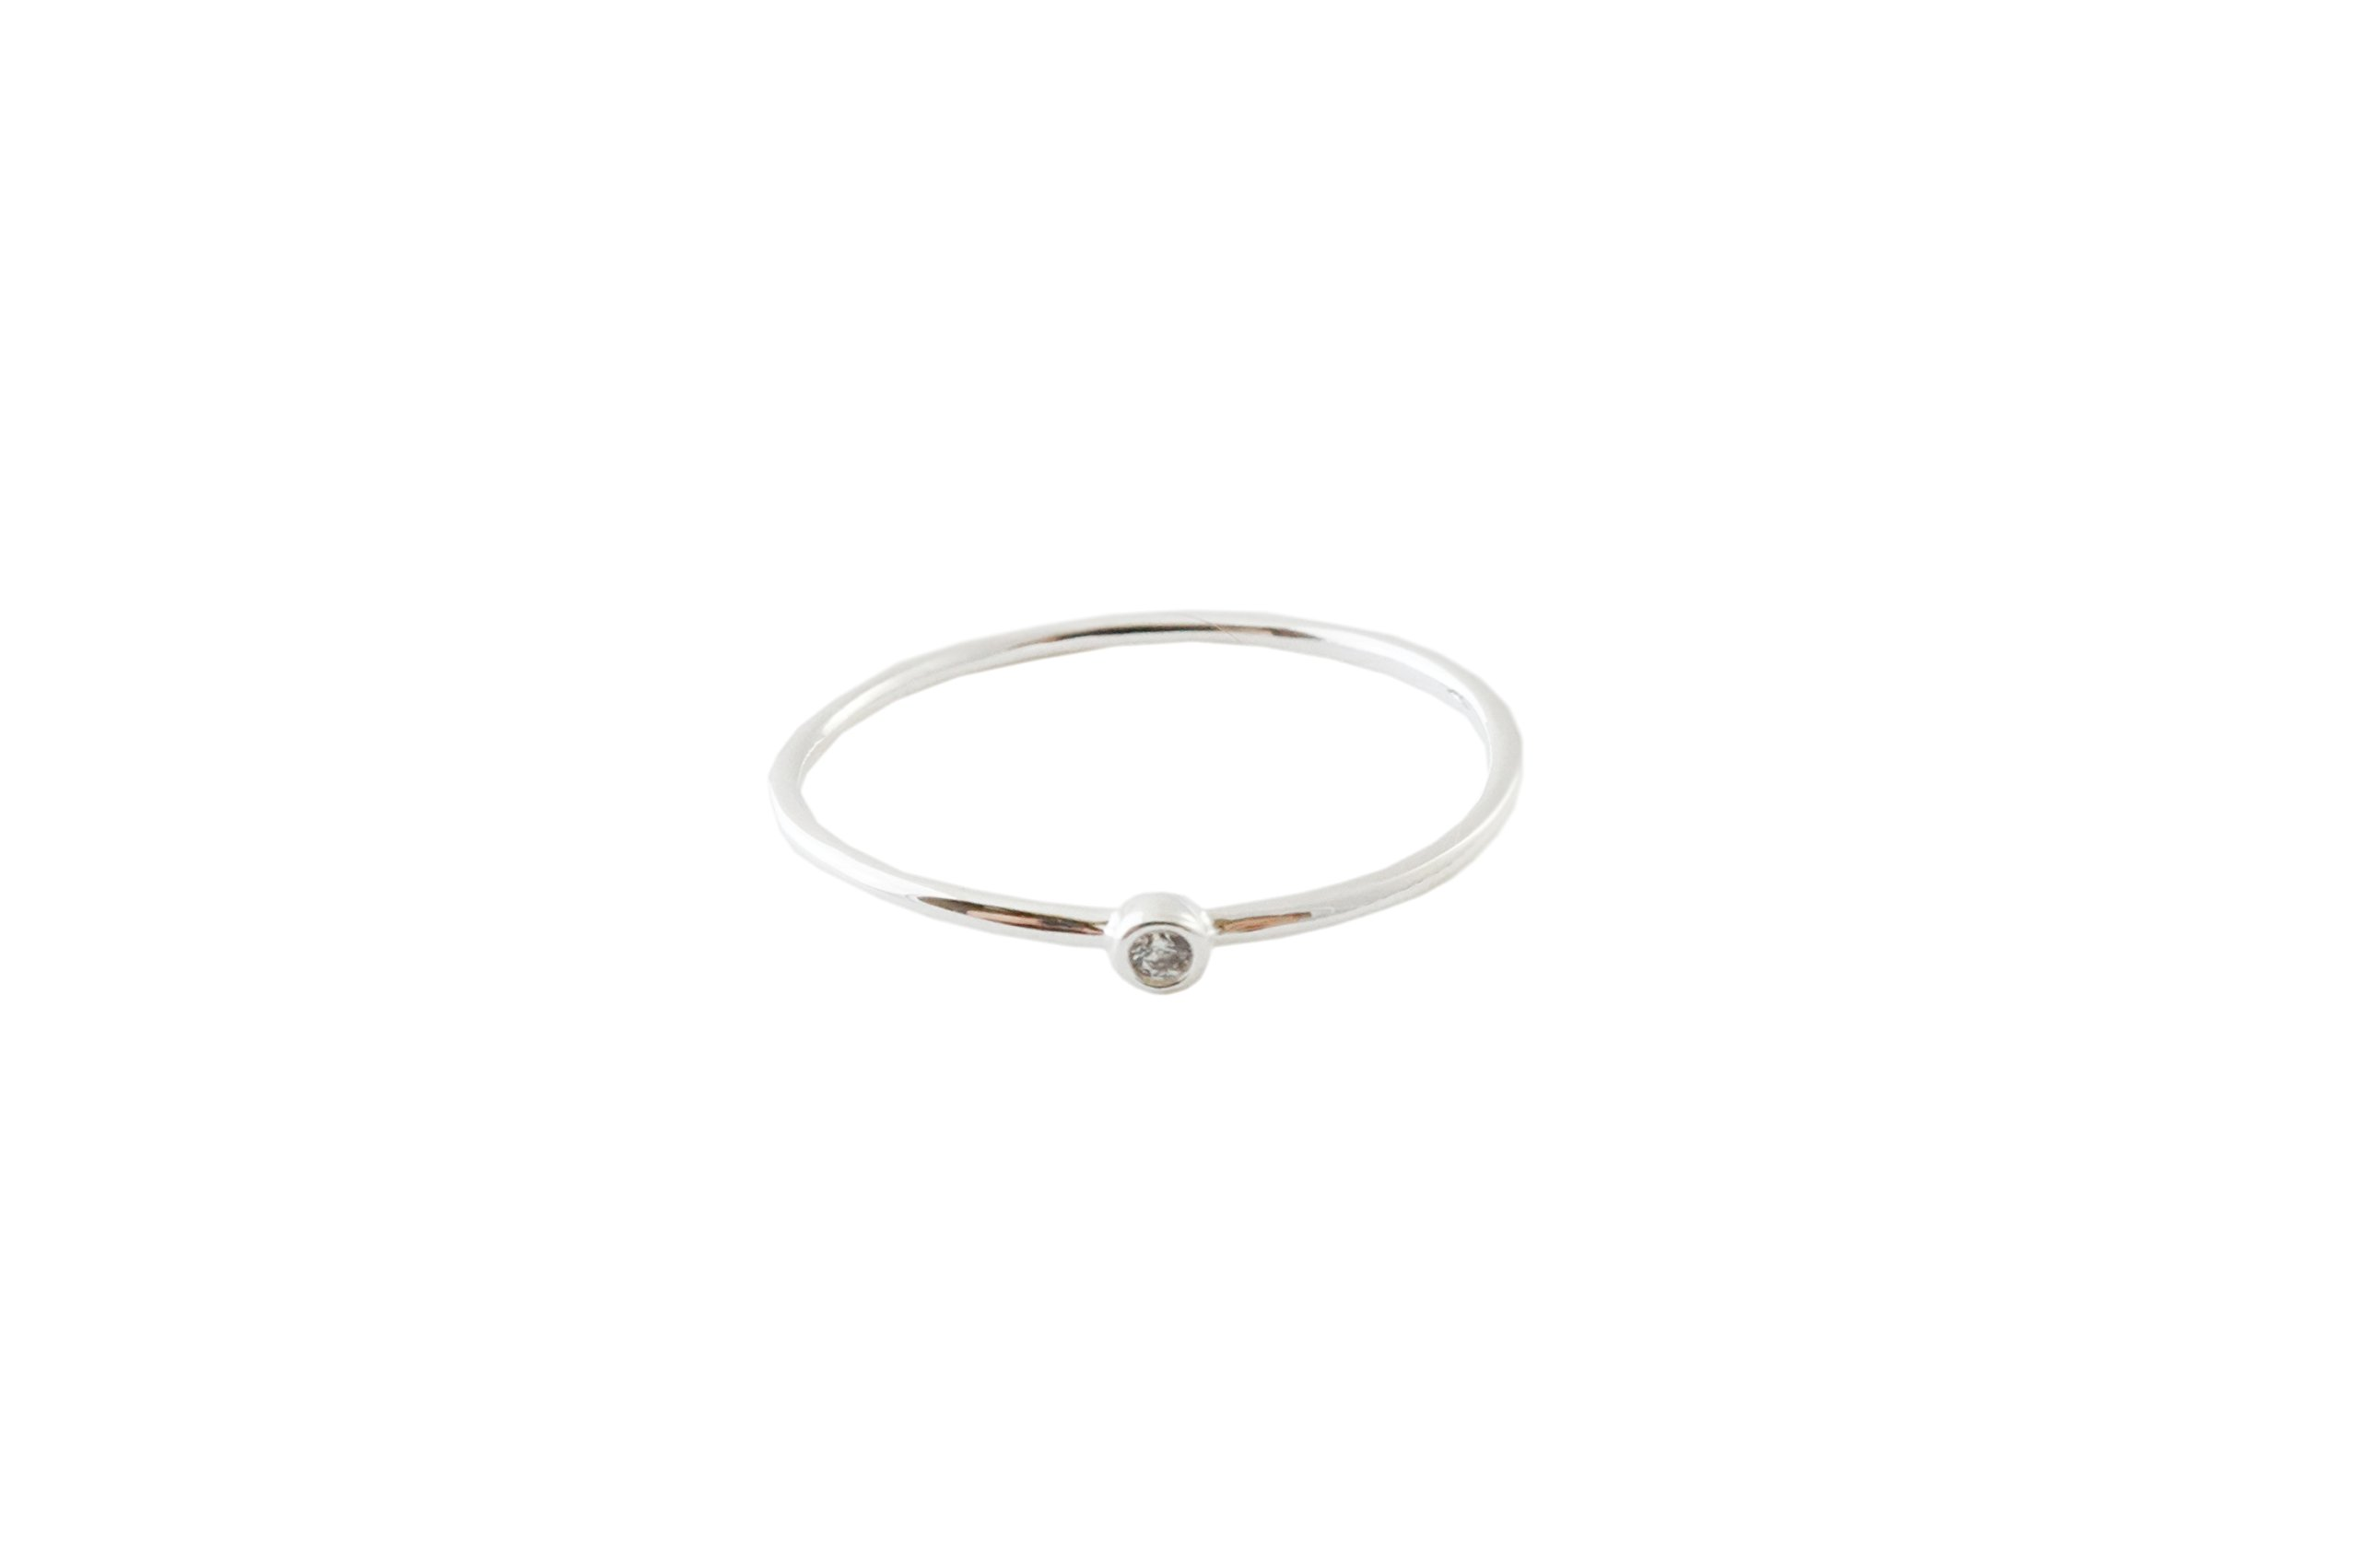 HONEYCAT Bezel Solitaire Ring in Gold, Rose Gold, or Silver | Minimalist, Delicate Jewelry (Silver, 6)